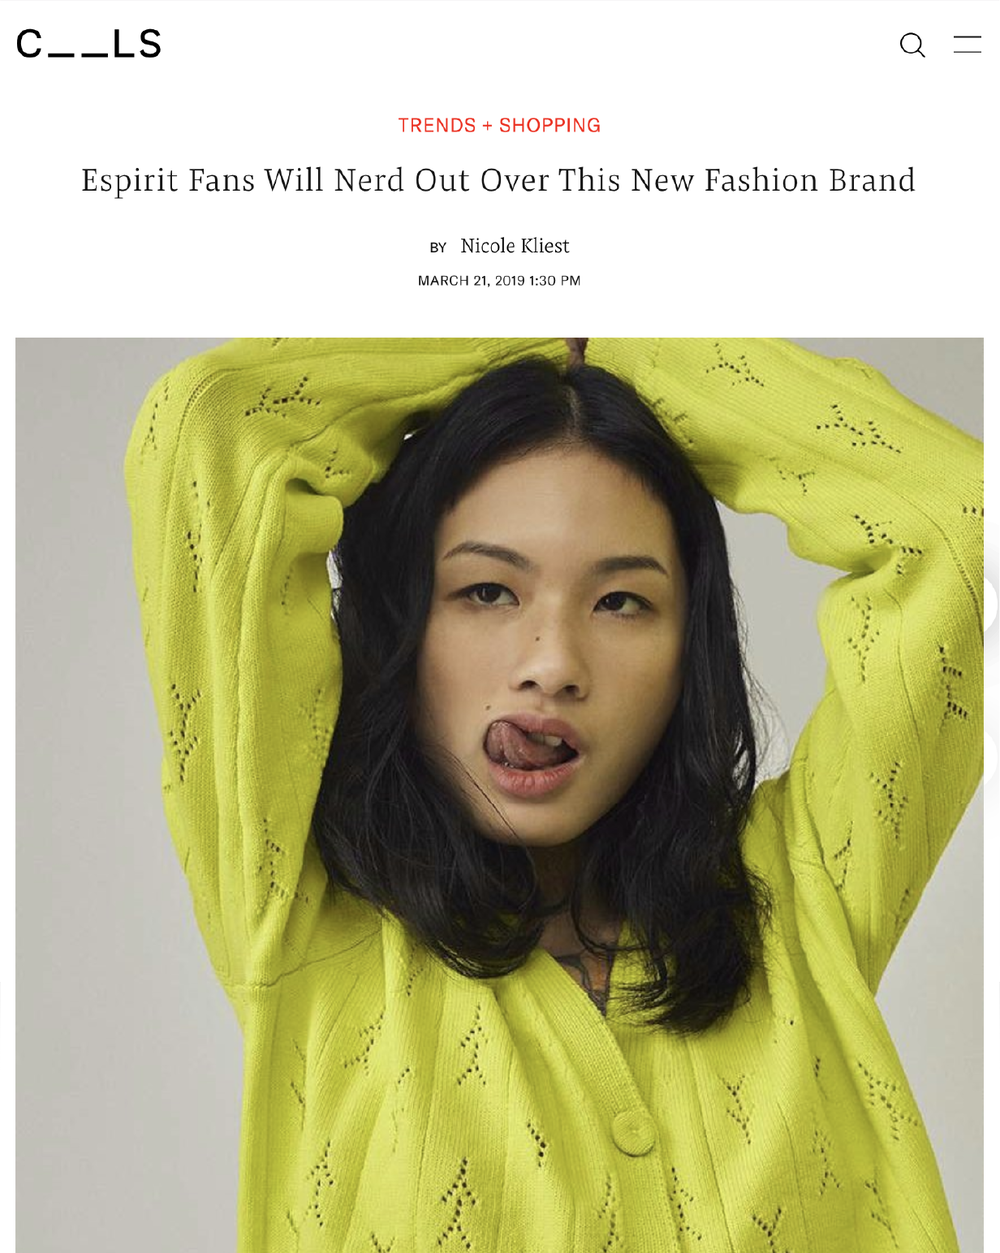 https://cools.com/espirit-fans-will-nerd-out-over-this-new-fashion-brand